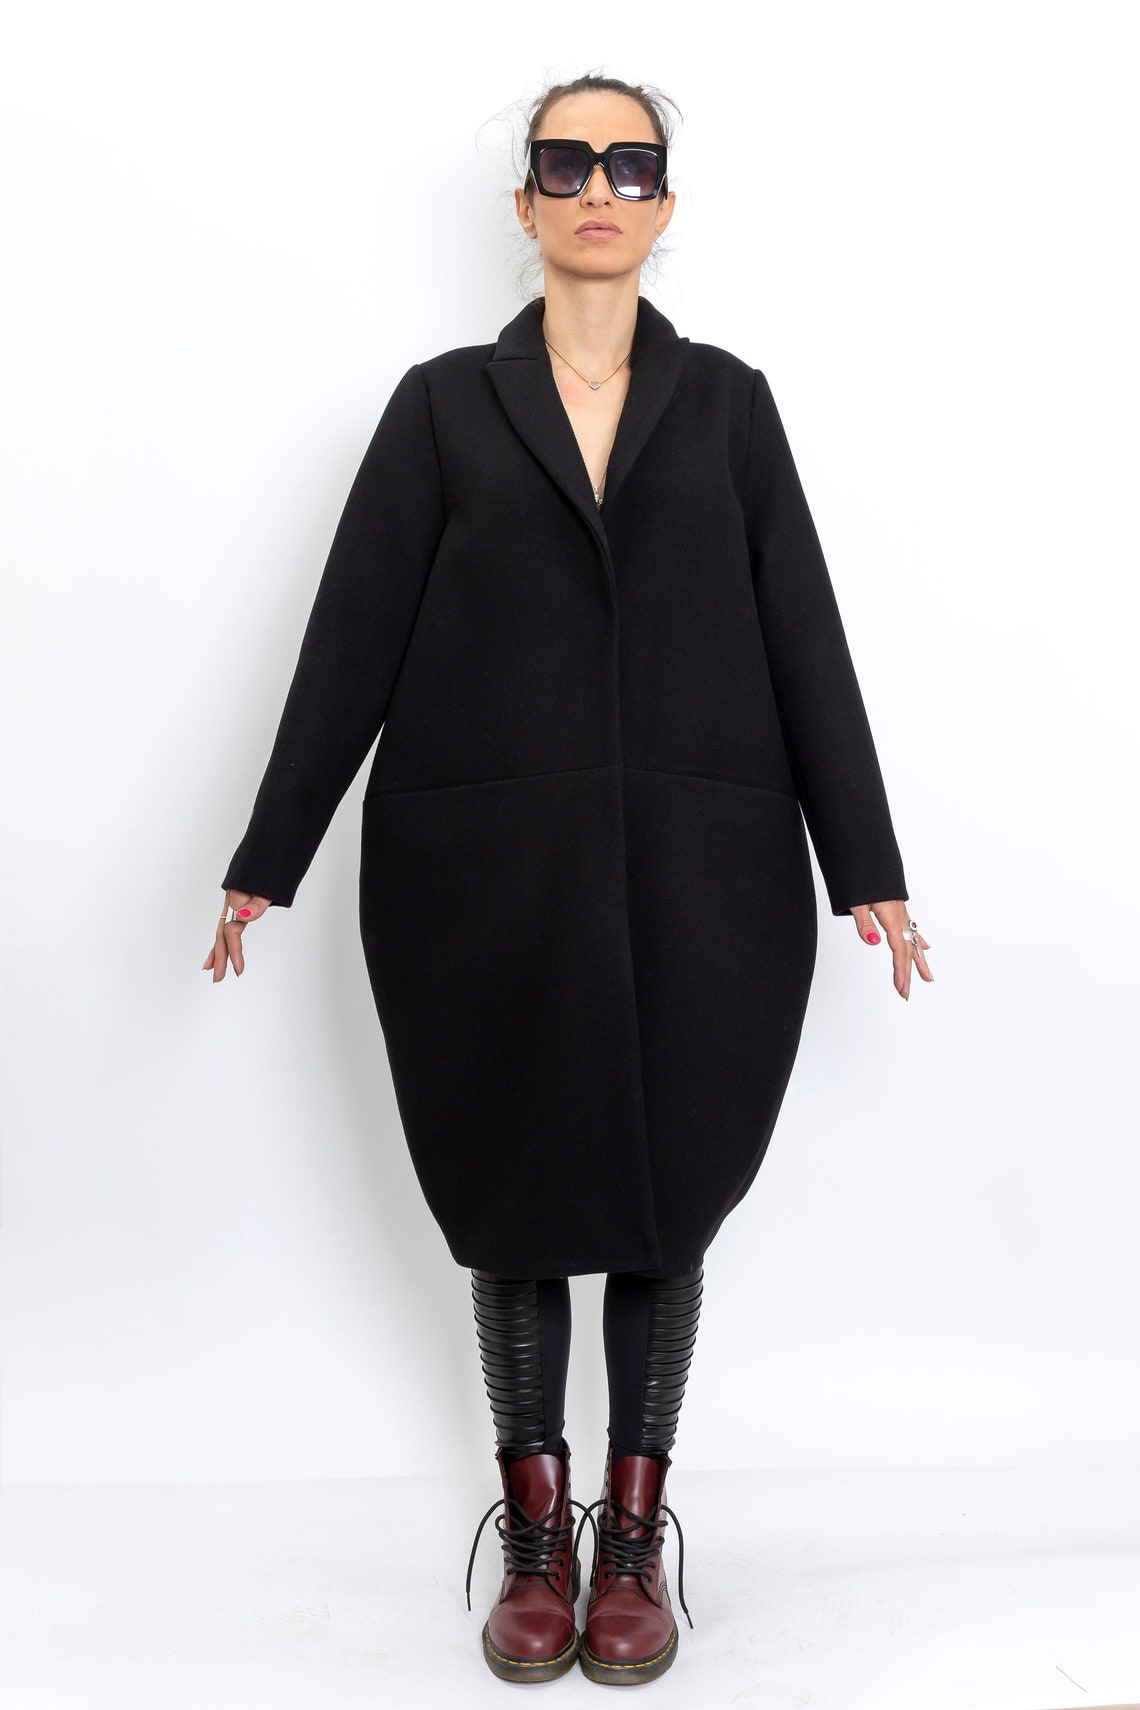 100 % Wool Coat From Our New Winter Collection, Handmade For Women, Fancy Oversized Coat, No Ordinary Cashmere